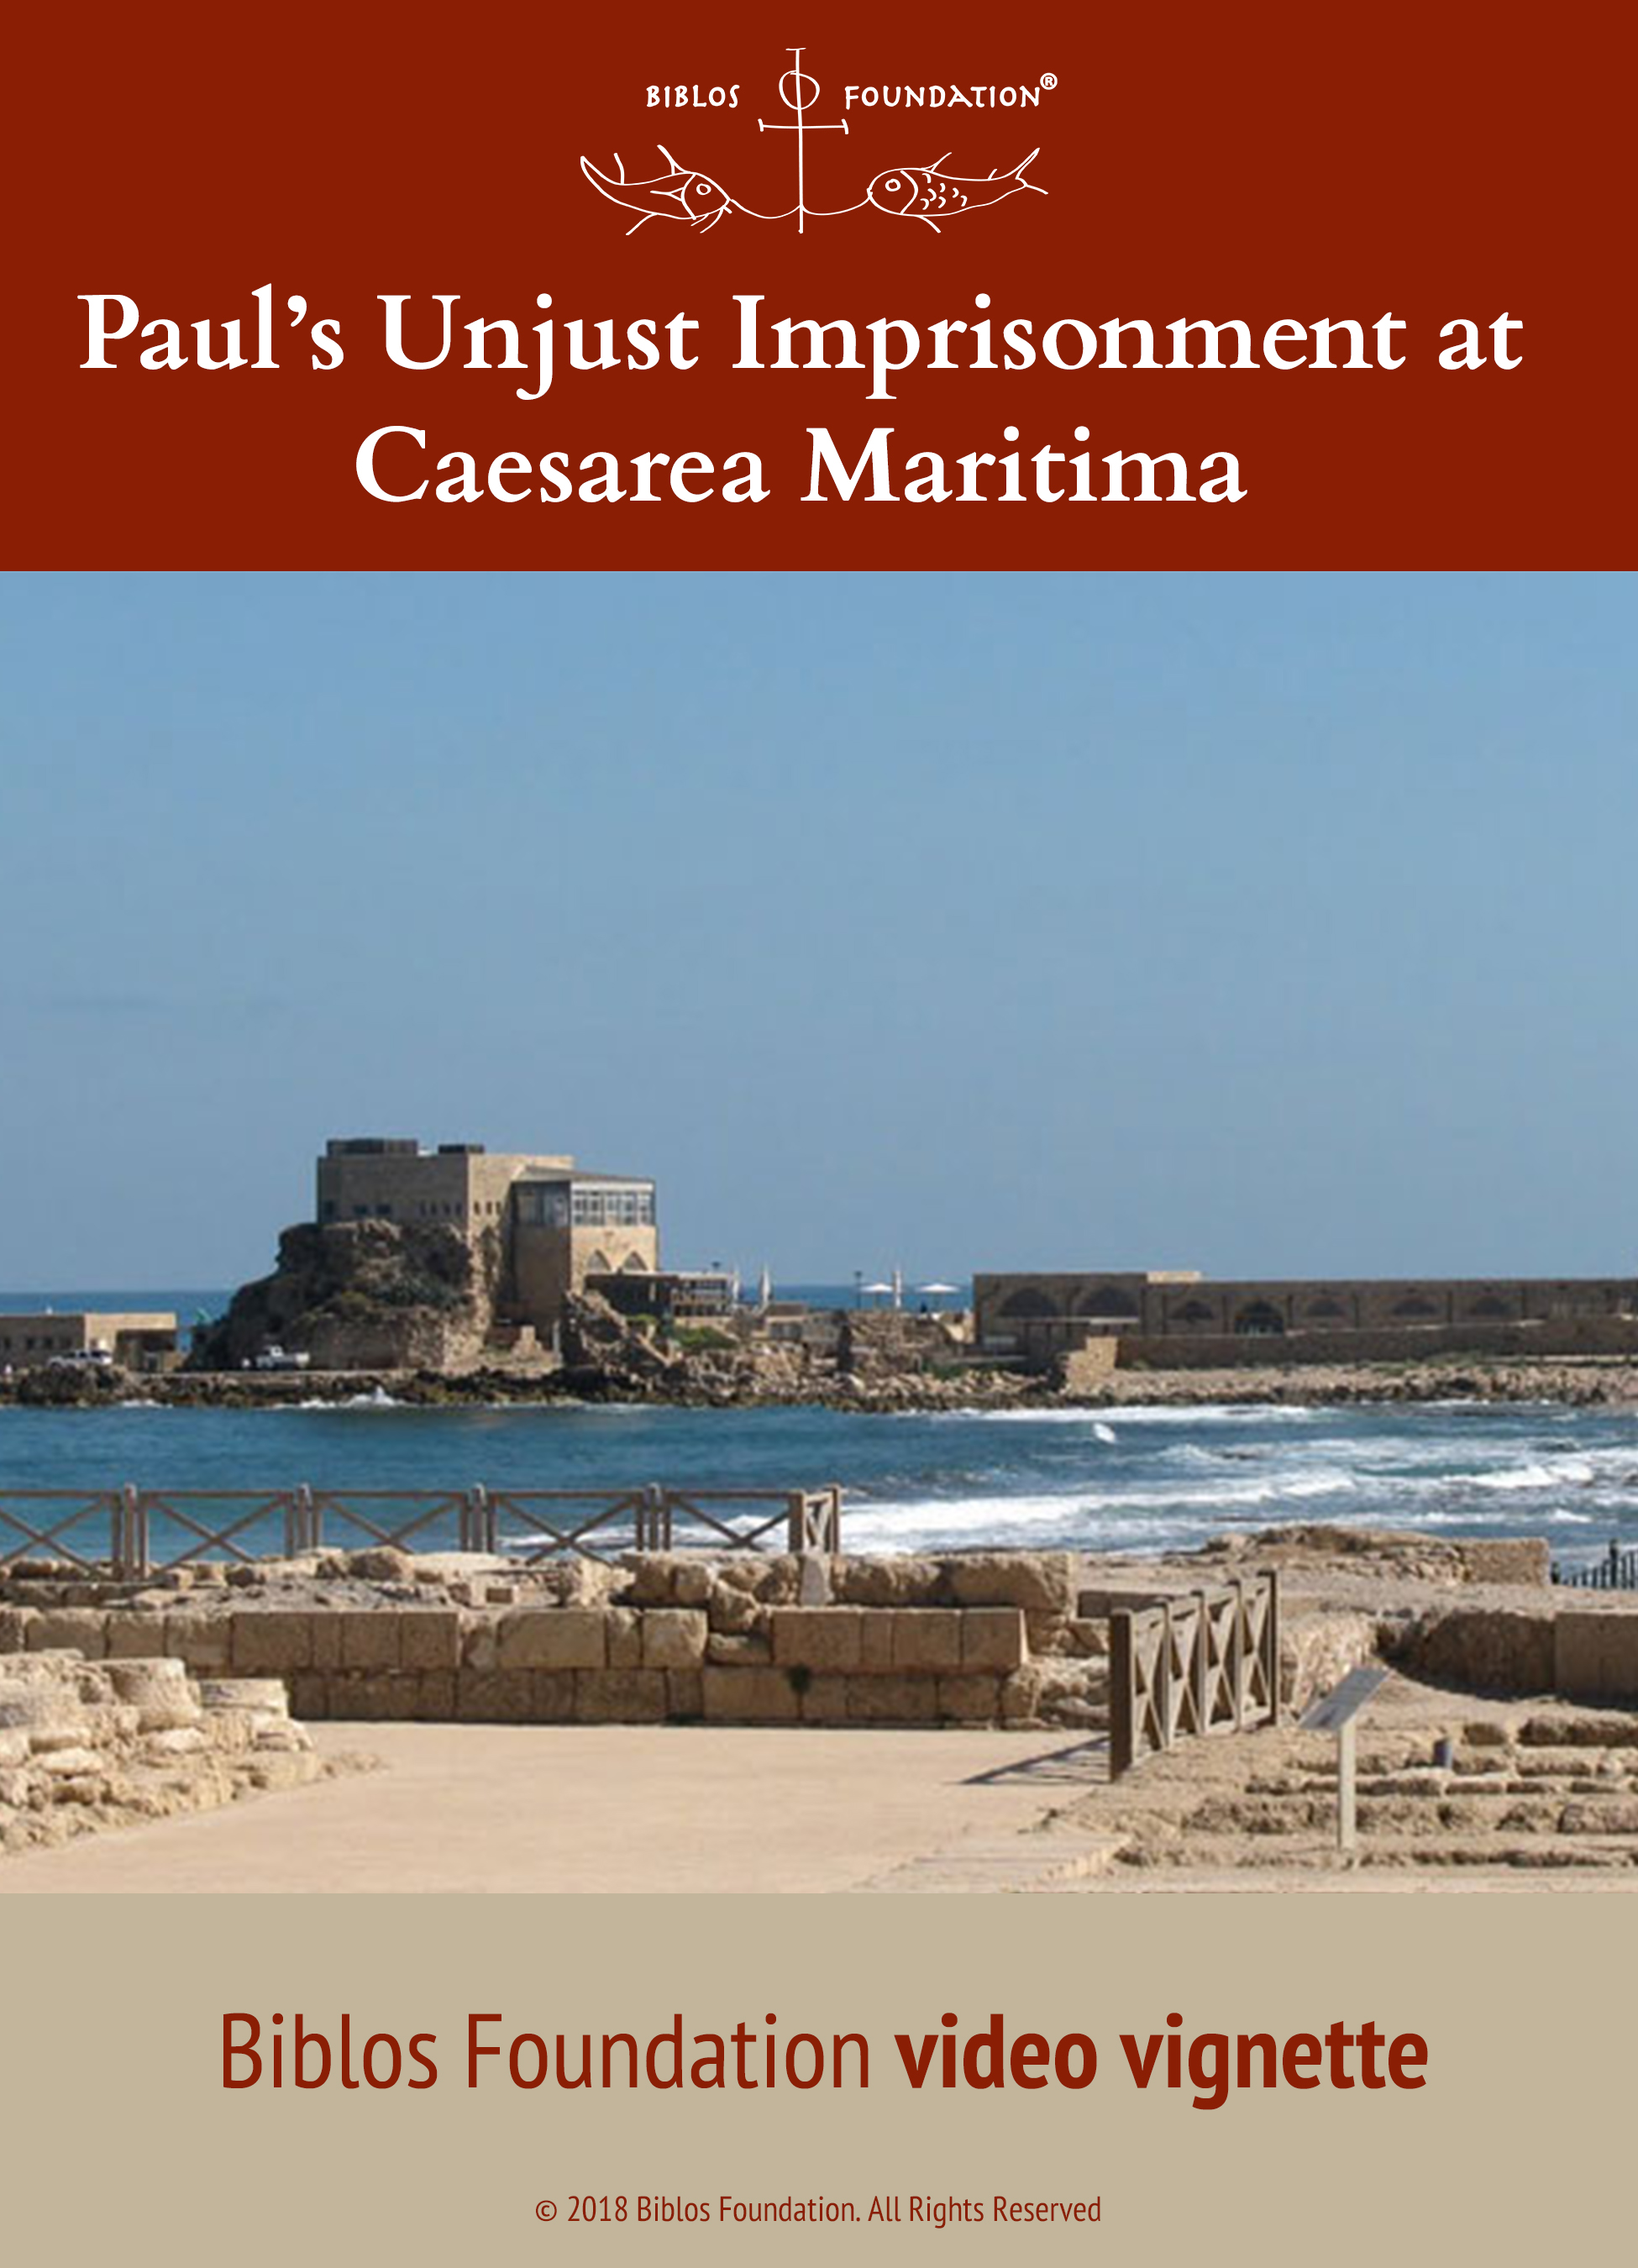 vv_Paul's Unjust Imprisonment at Caesarea Maritima